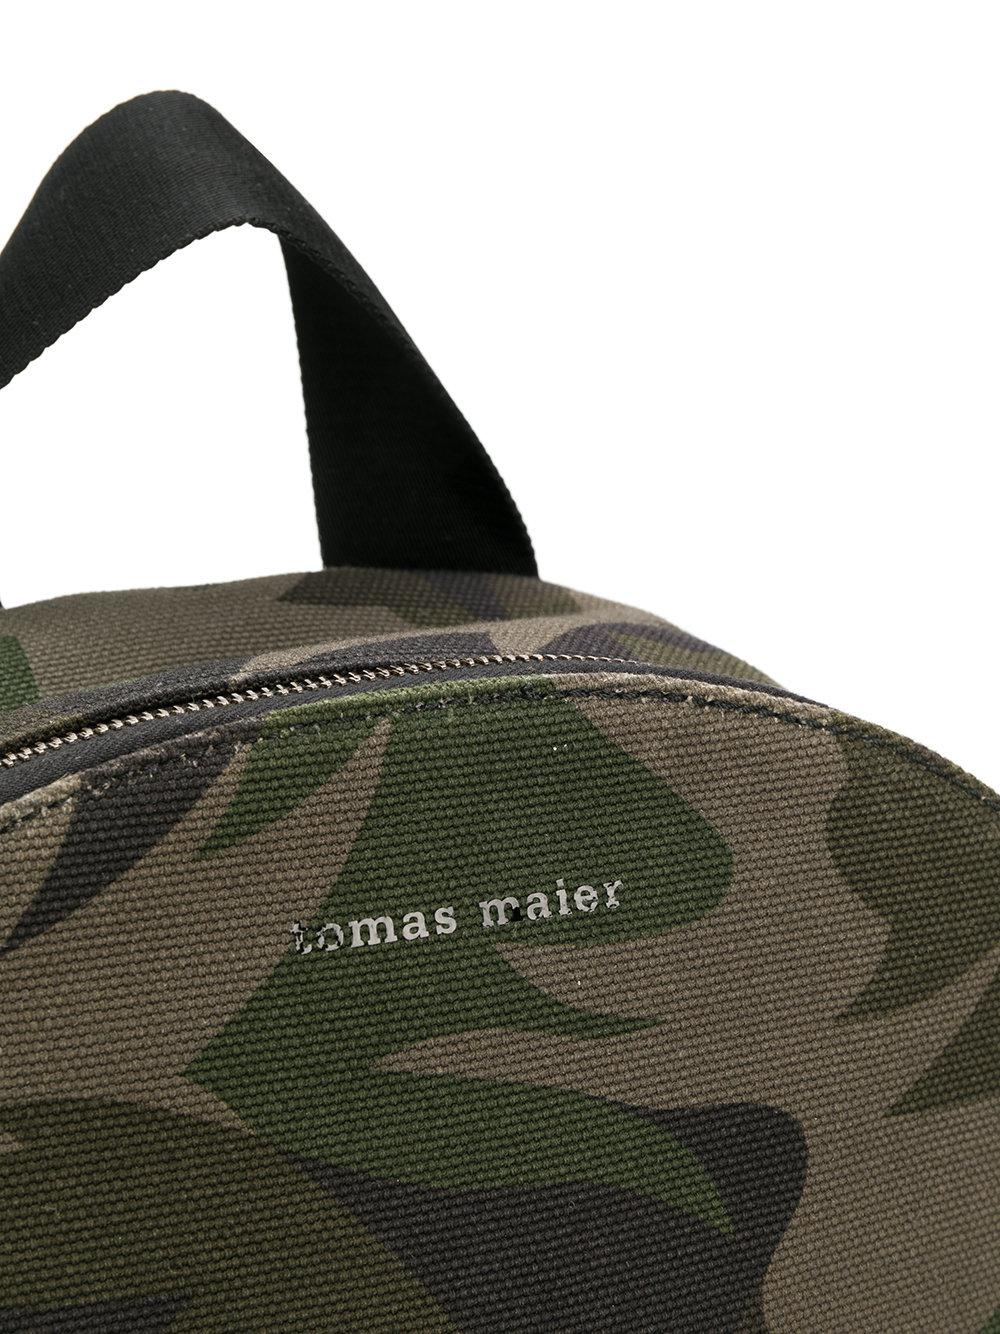 Tomas Maier Canvas Camo Backpack in Green for Men